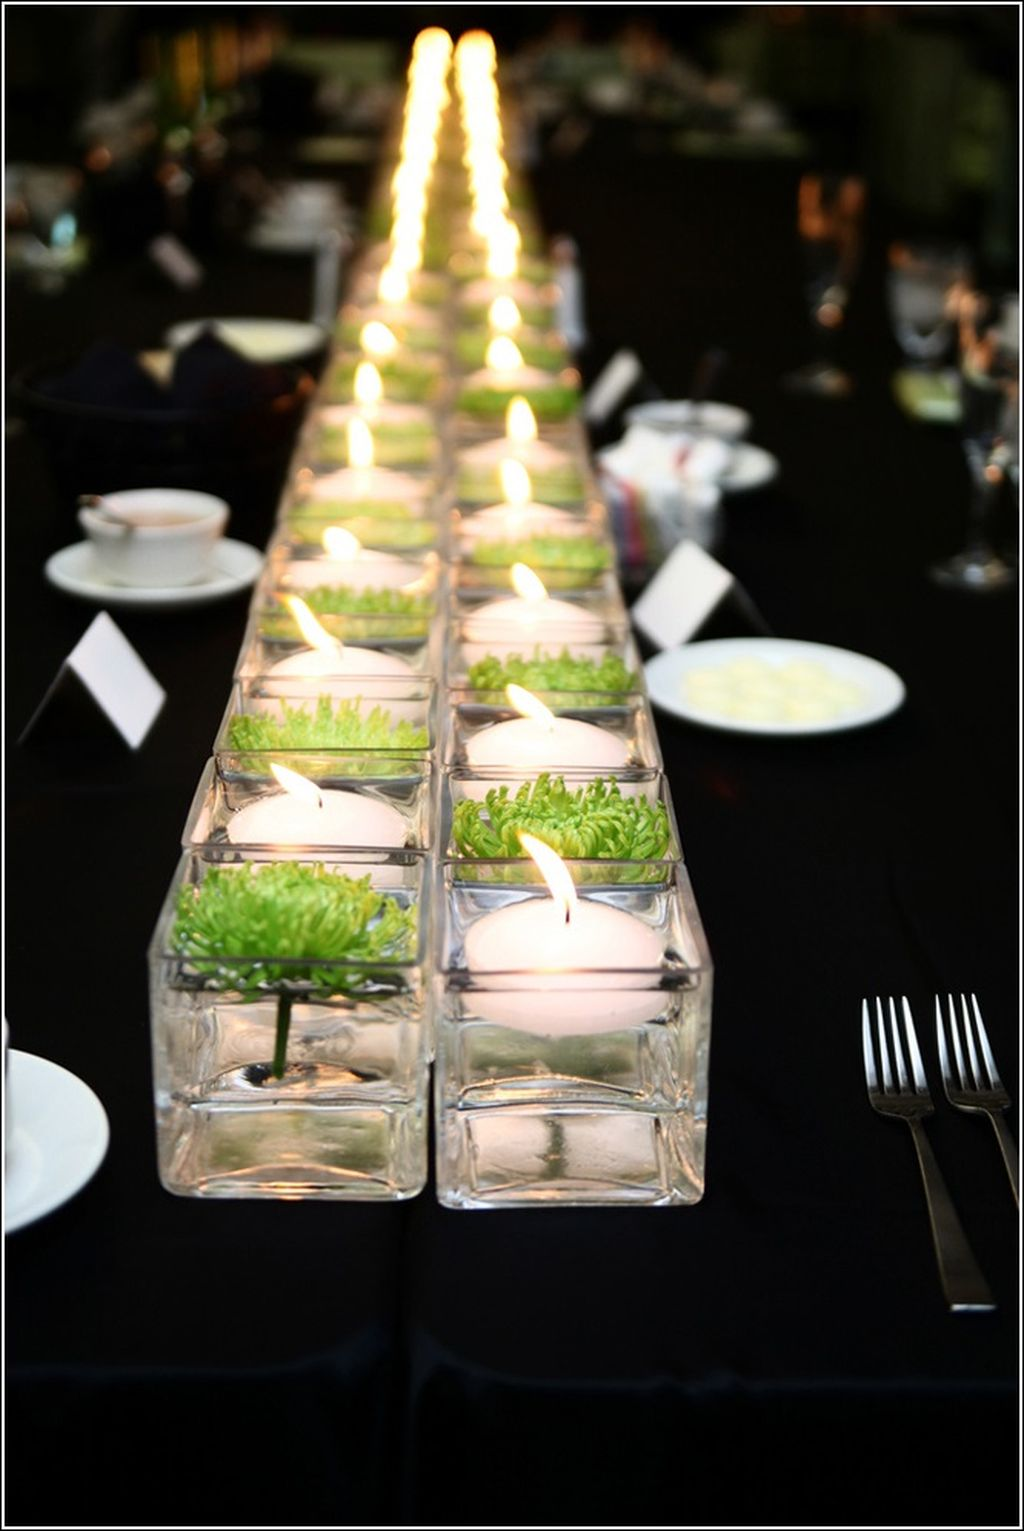 Inspiring Modern Rustic Christmas Centerpieces Ideas With Candles 66